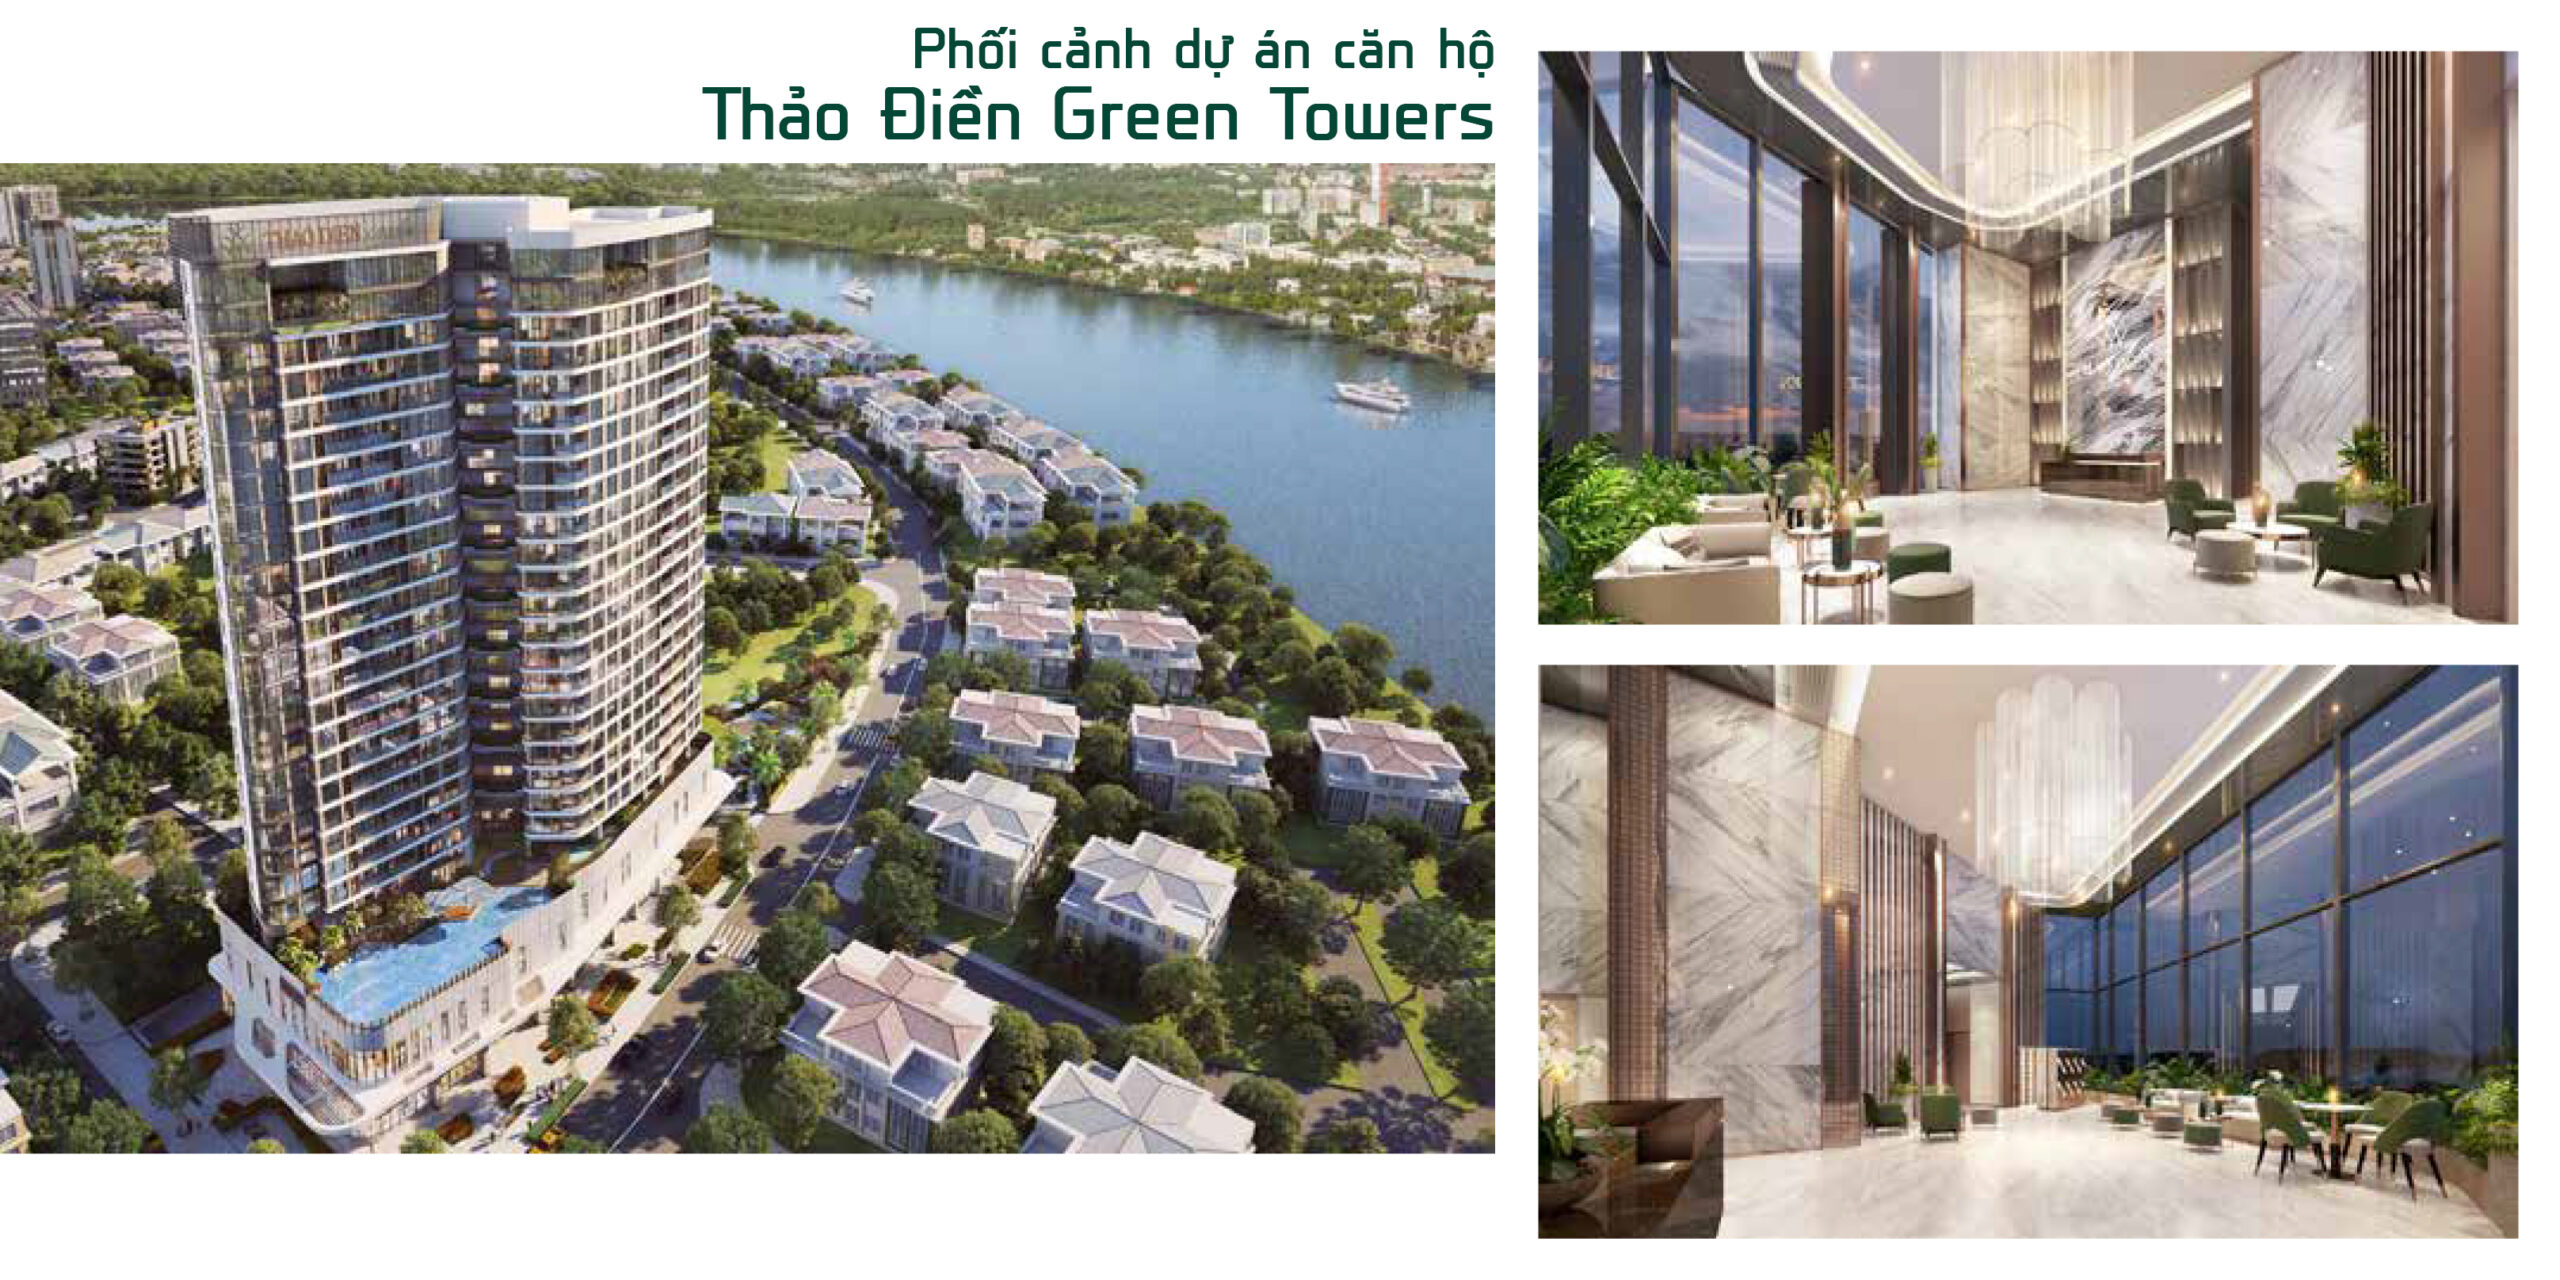 phoi-canh-du-an-can-ho-thao-dien-green-towers